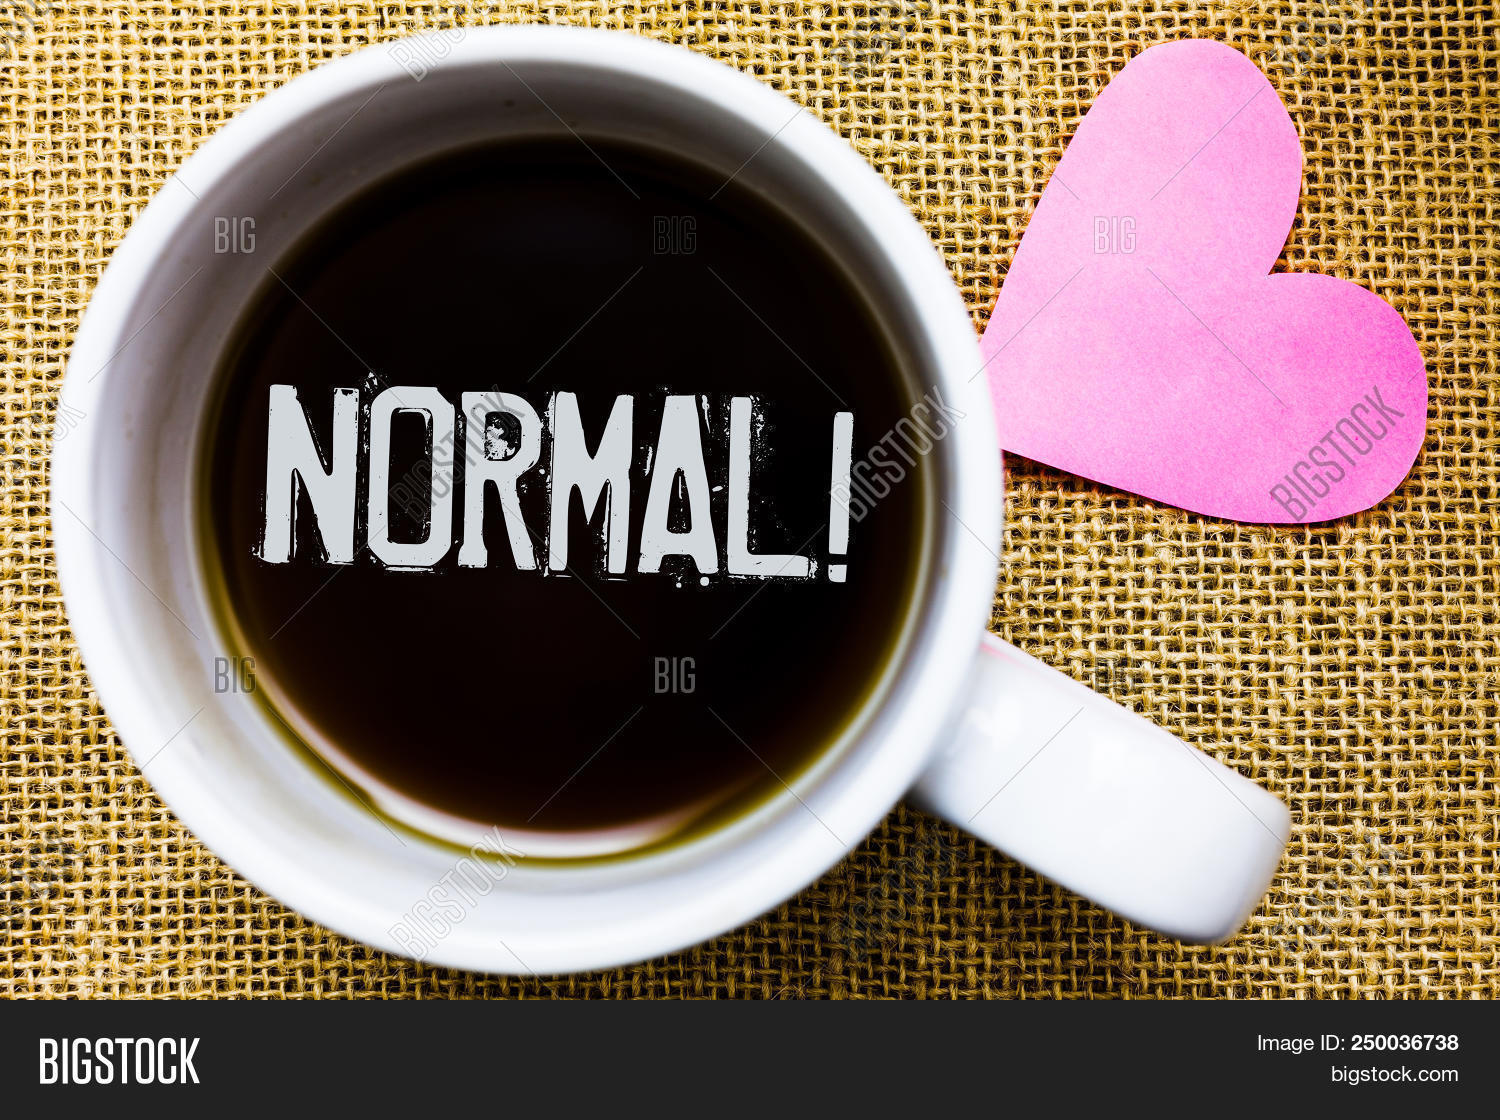 abnormal,anatomy,average,awareness,belief,care,casual,confidence,confident,diagnosis,different,disabled,disease,disorder,diversity,exam,examination,exceptional,health,healthcare,healthy,human,identity,illness,lifestyle,medicine,model,natural,normal,normalcy,normality,order,personal,positive,psychology,real,science,self,self-confidence,self-esteem,strange,therapy,treatment,unconventional,unique,uniqueness,unusual